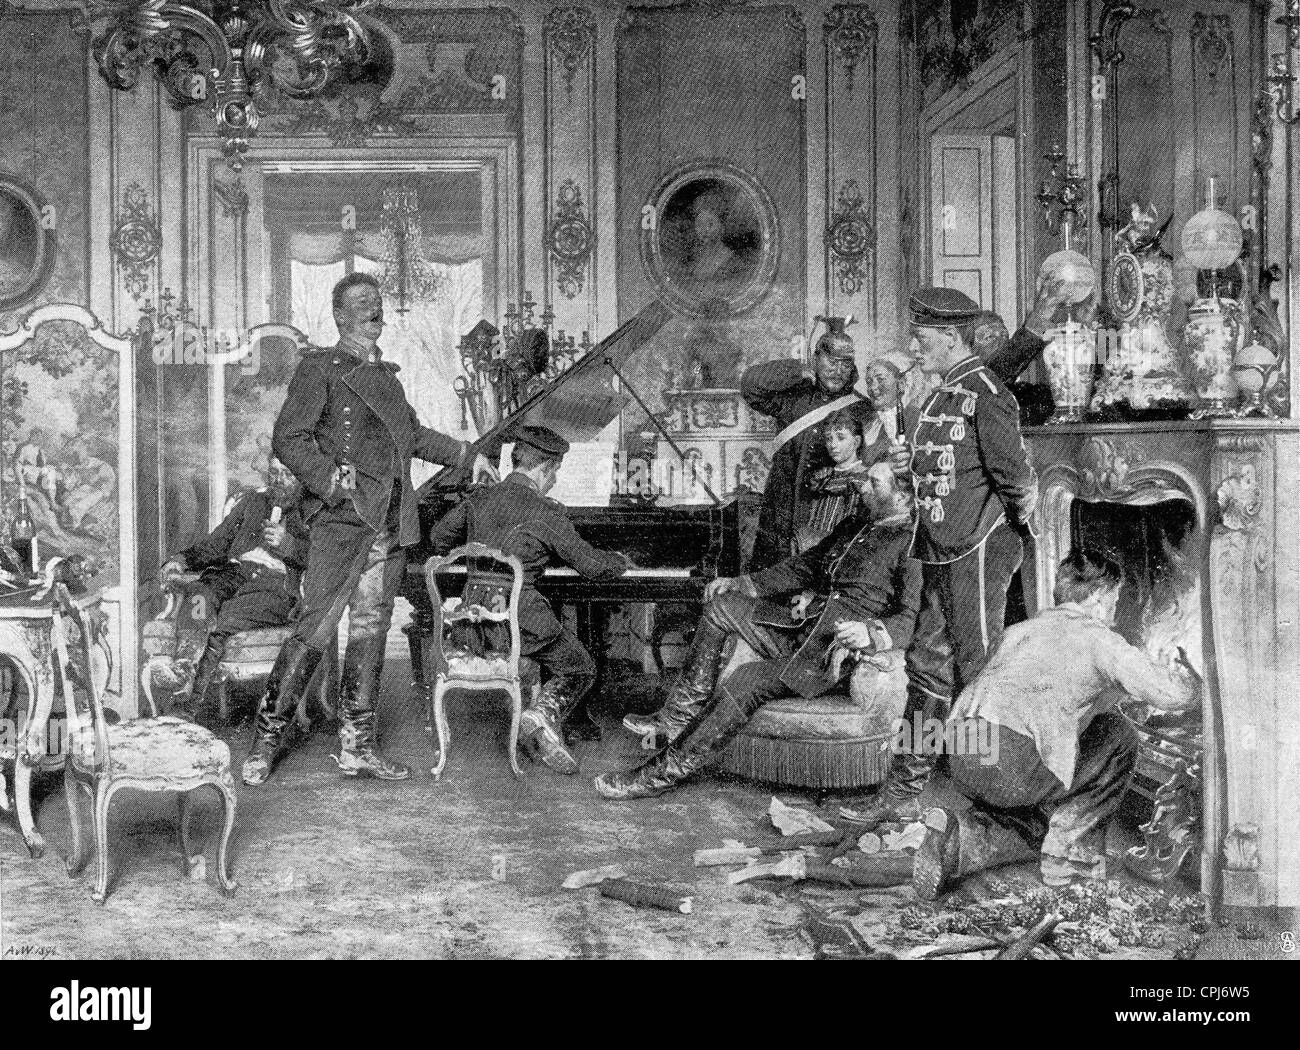 'At the Base Quarters Outside Paris 1870' - Stock Image '